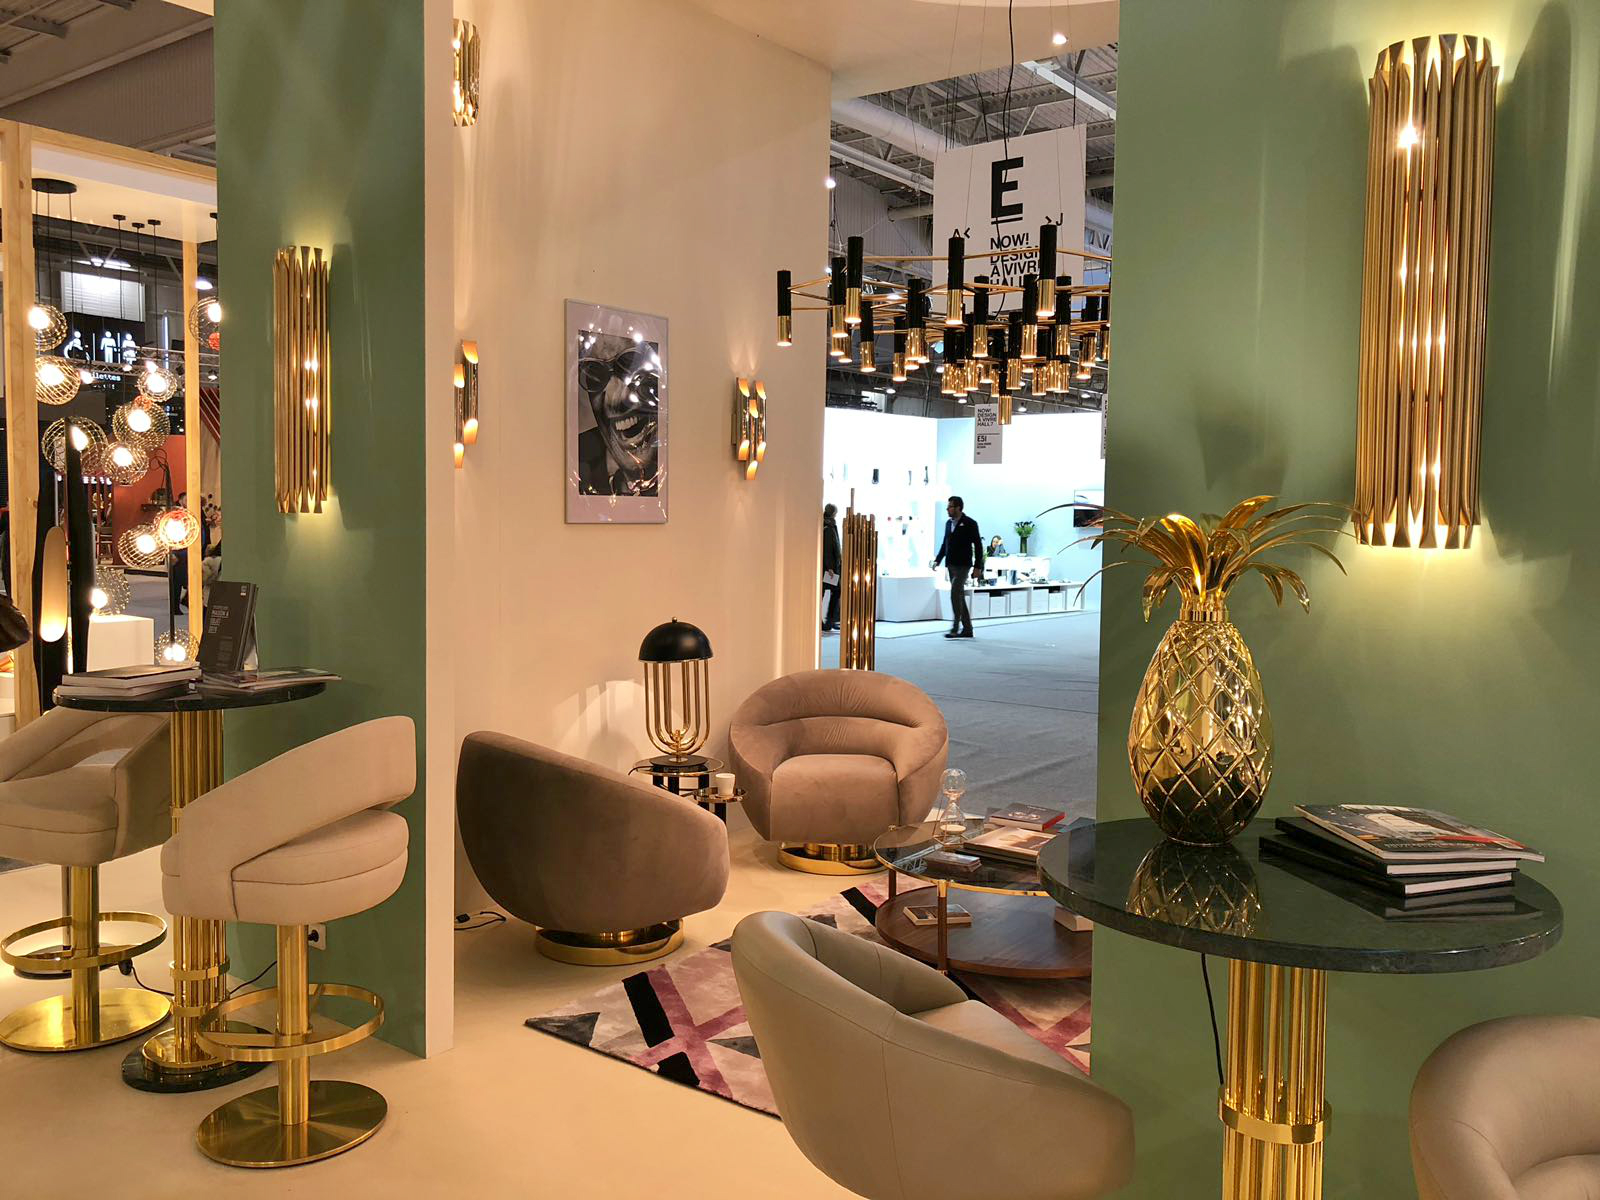 Why You Should Attend Maison Et Objet Paris This January 8 maison et objet paris Why You Should Attend Maison Et Objet Paris This January Why You Should Attend Maison Et Objet Paris This January 8